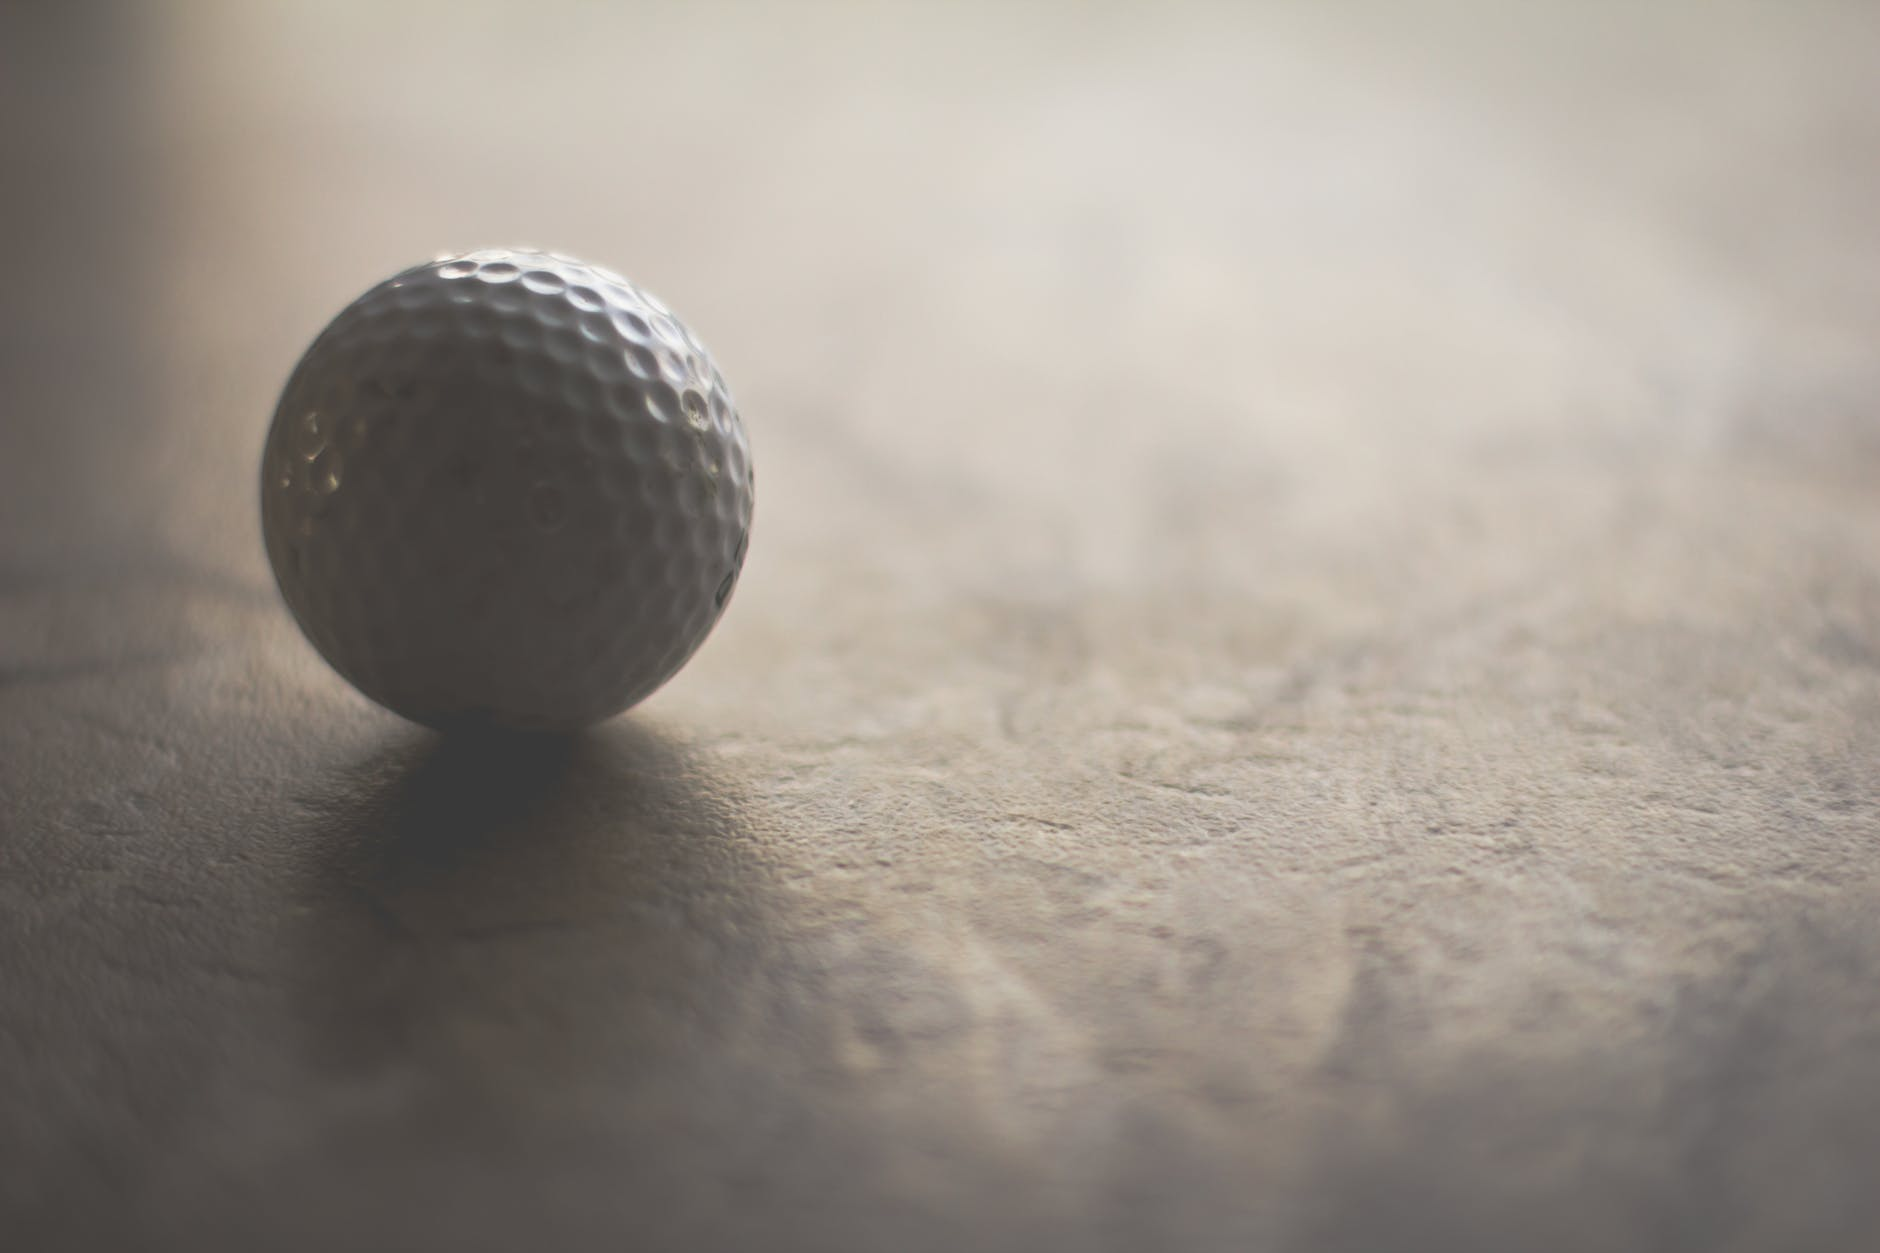 Golf ball image, golf ball on surface